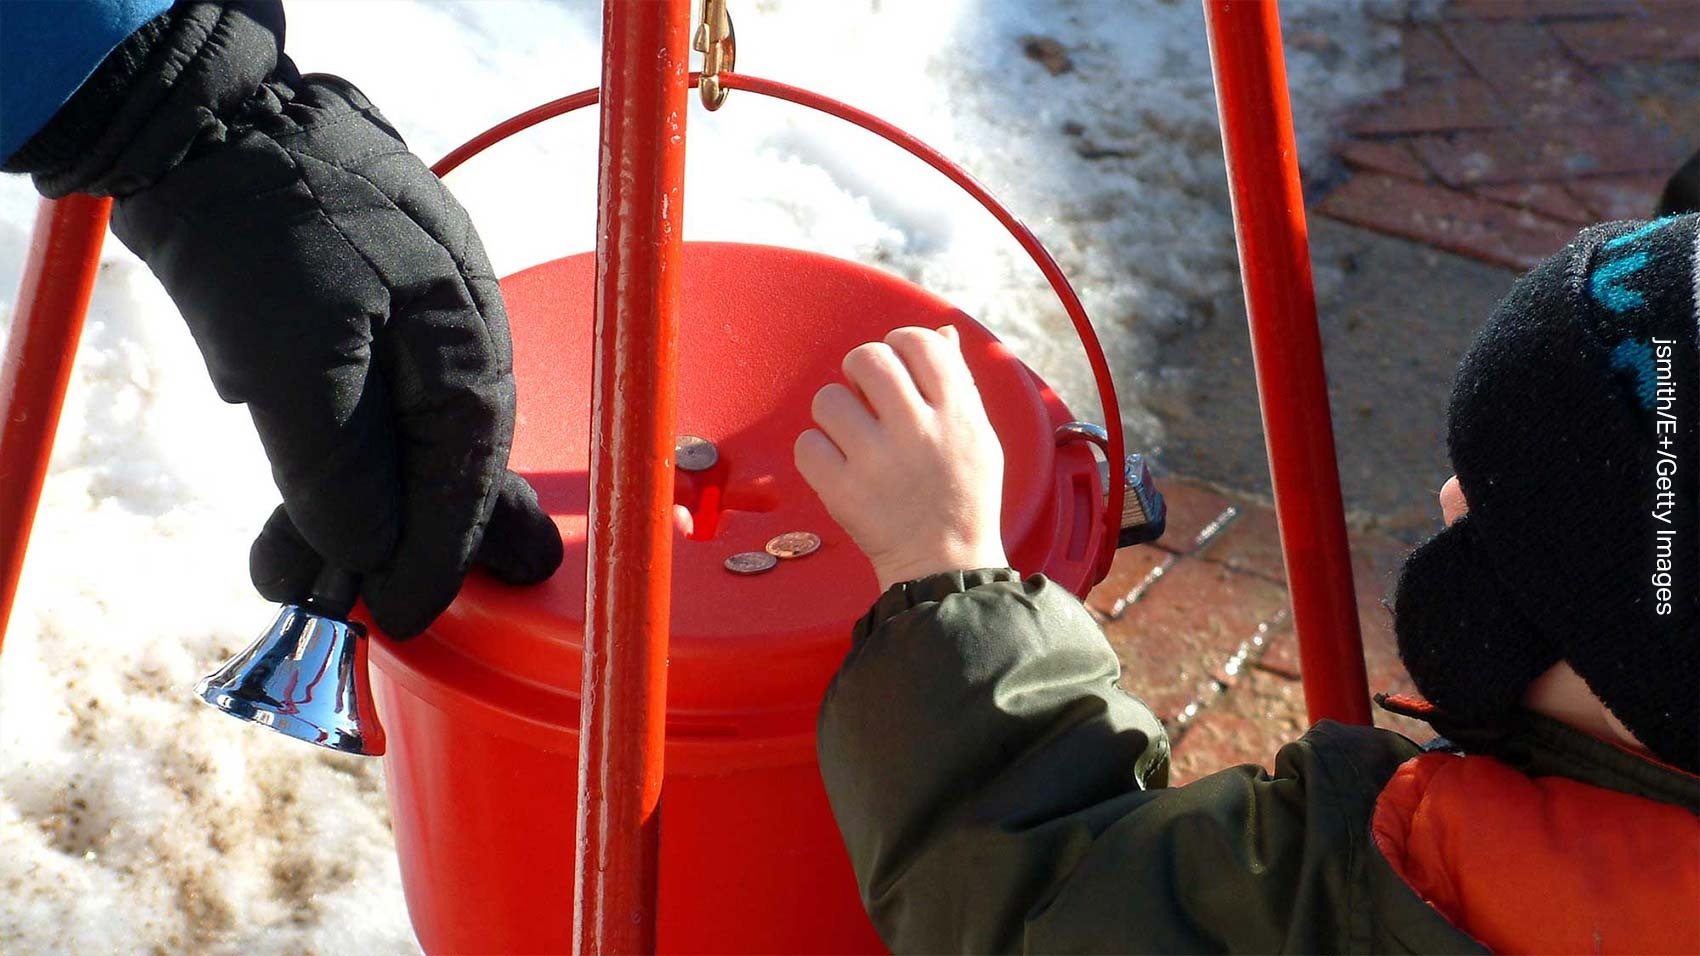 Donating at the red kettle to help others